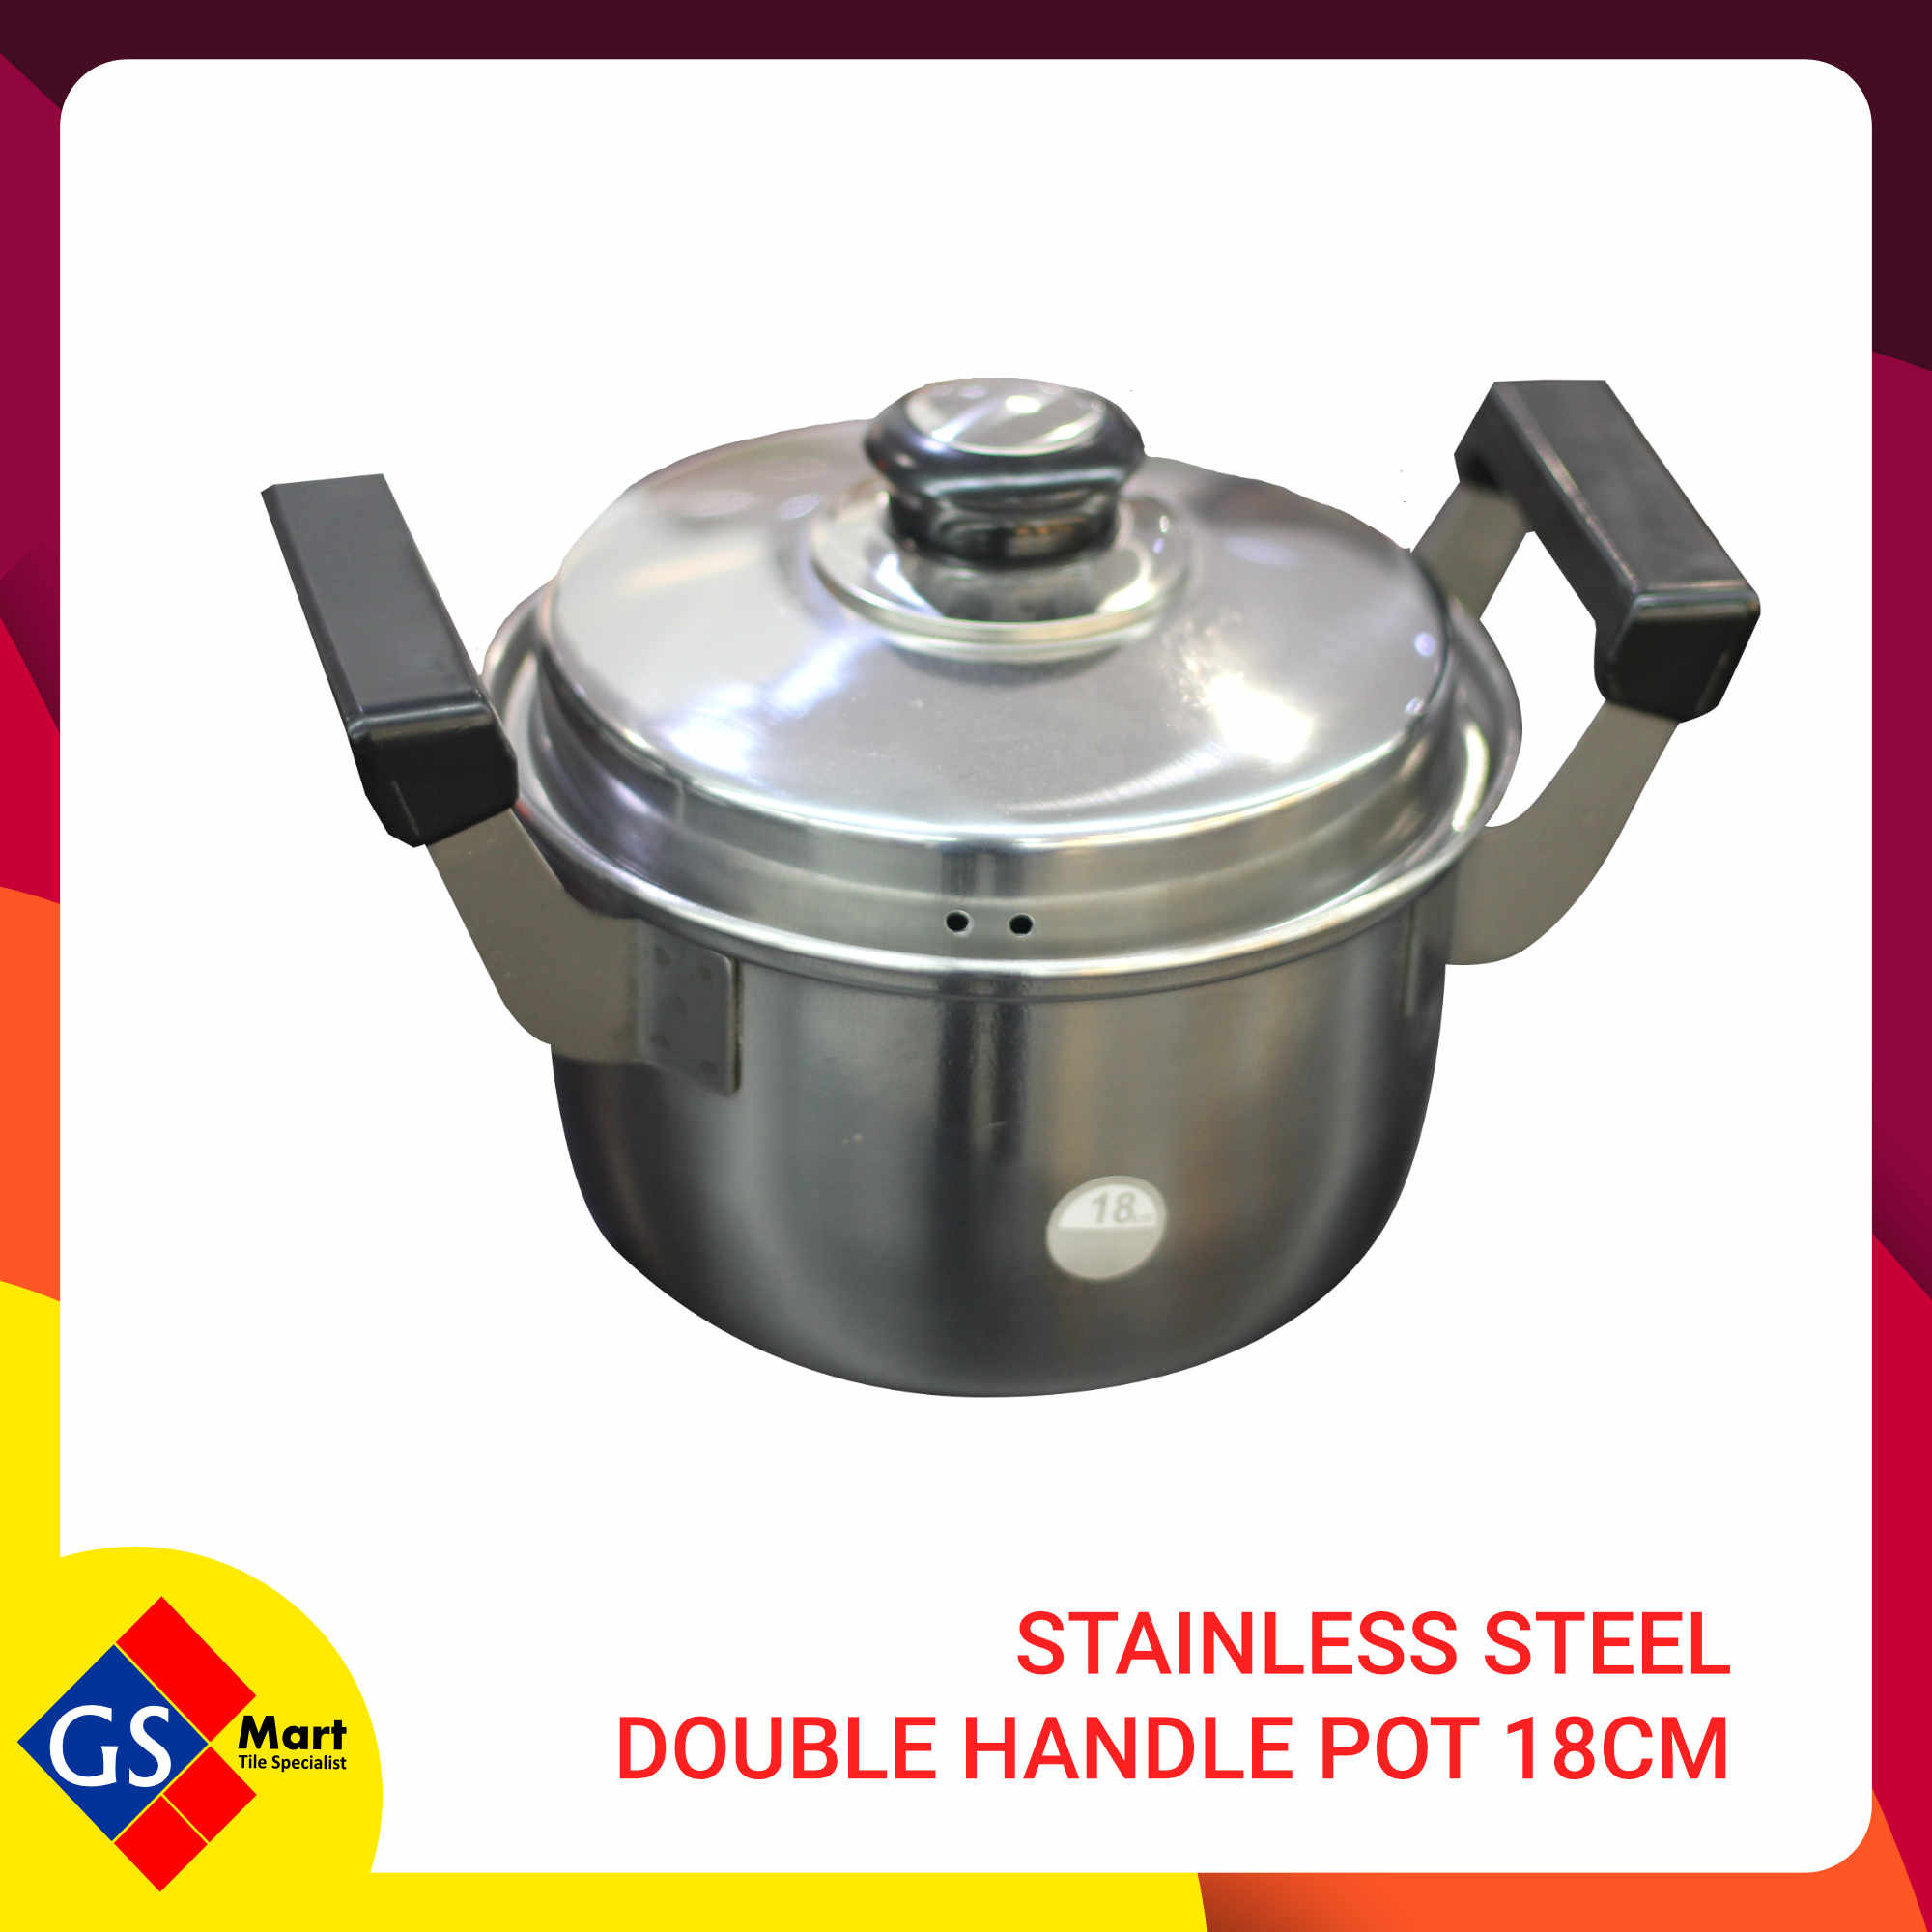 Stainless Steel Double Handle Pot